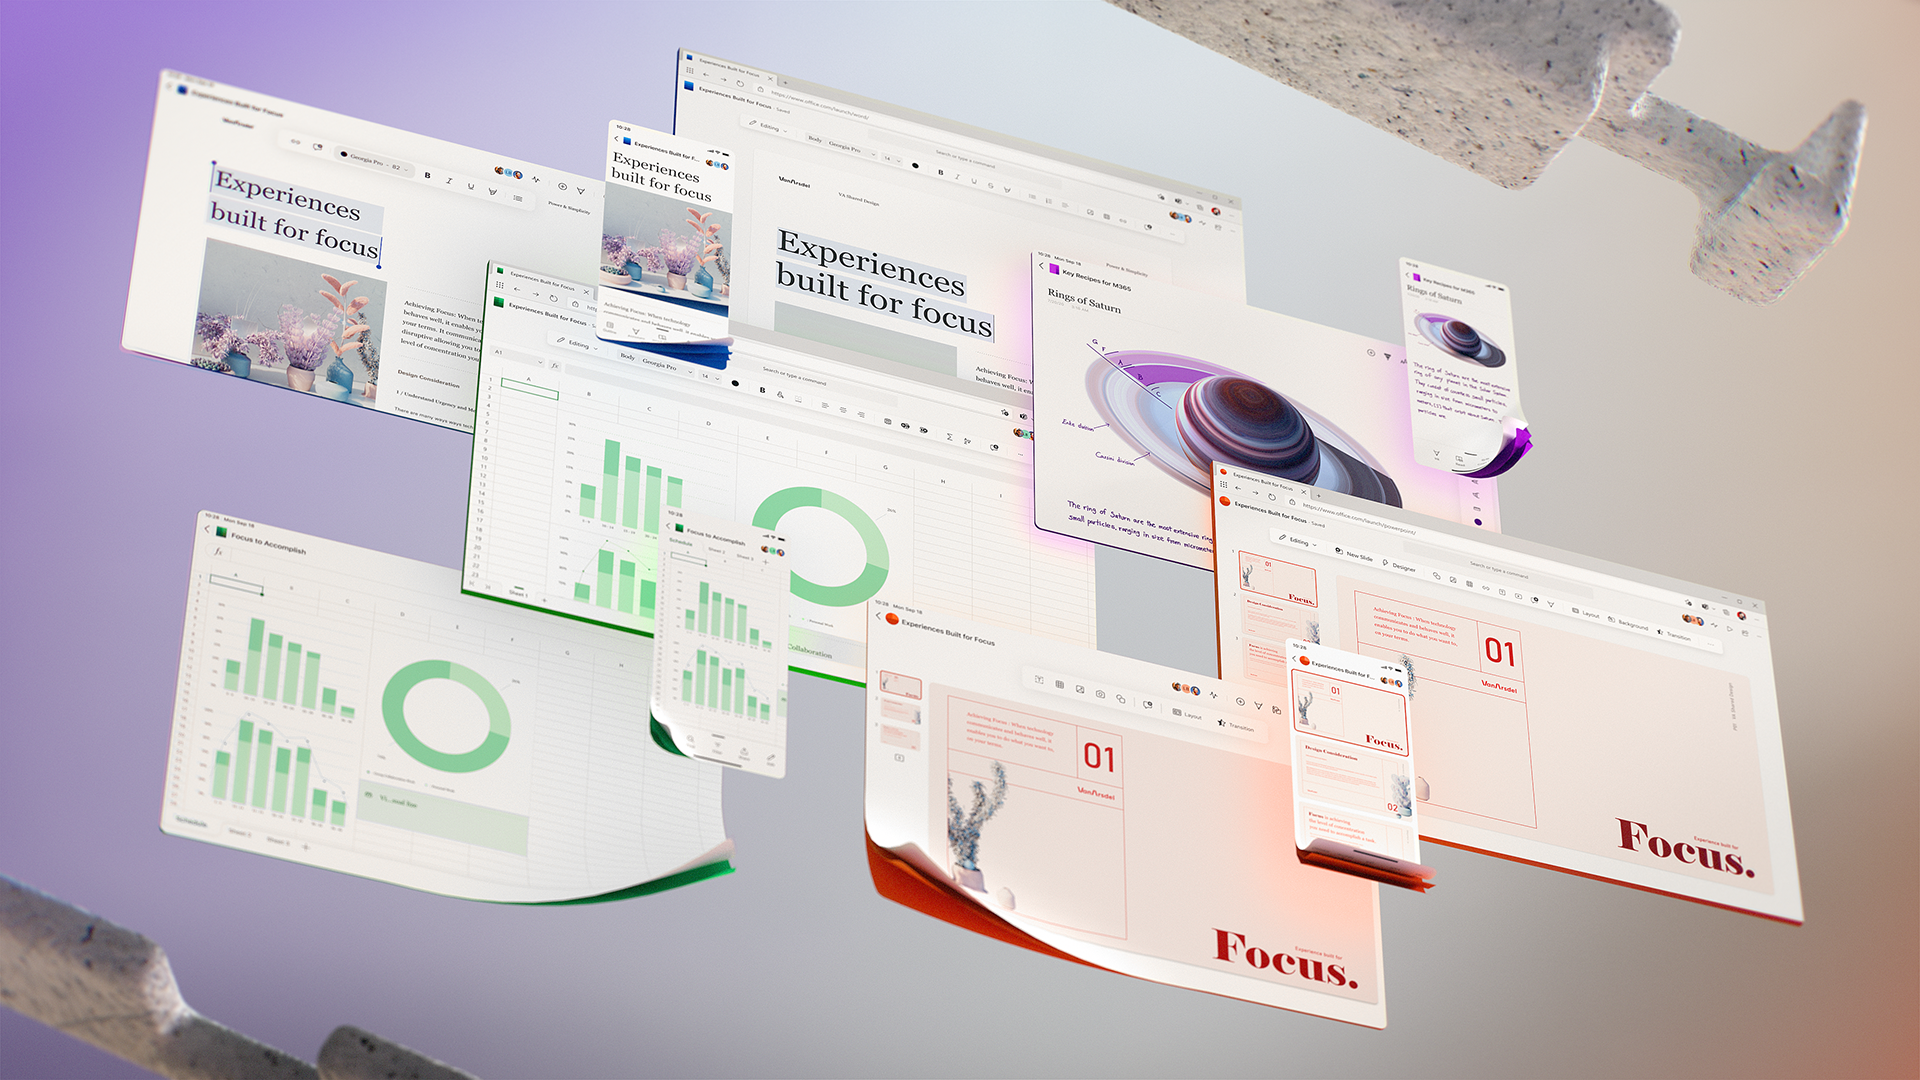 5 screens across desktop, tablet, and mobile showing explorations of future UI.